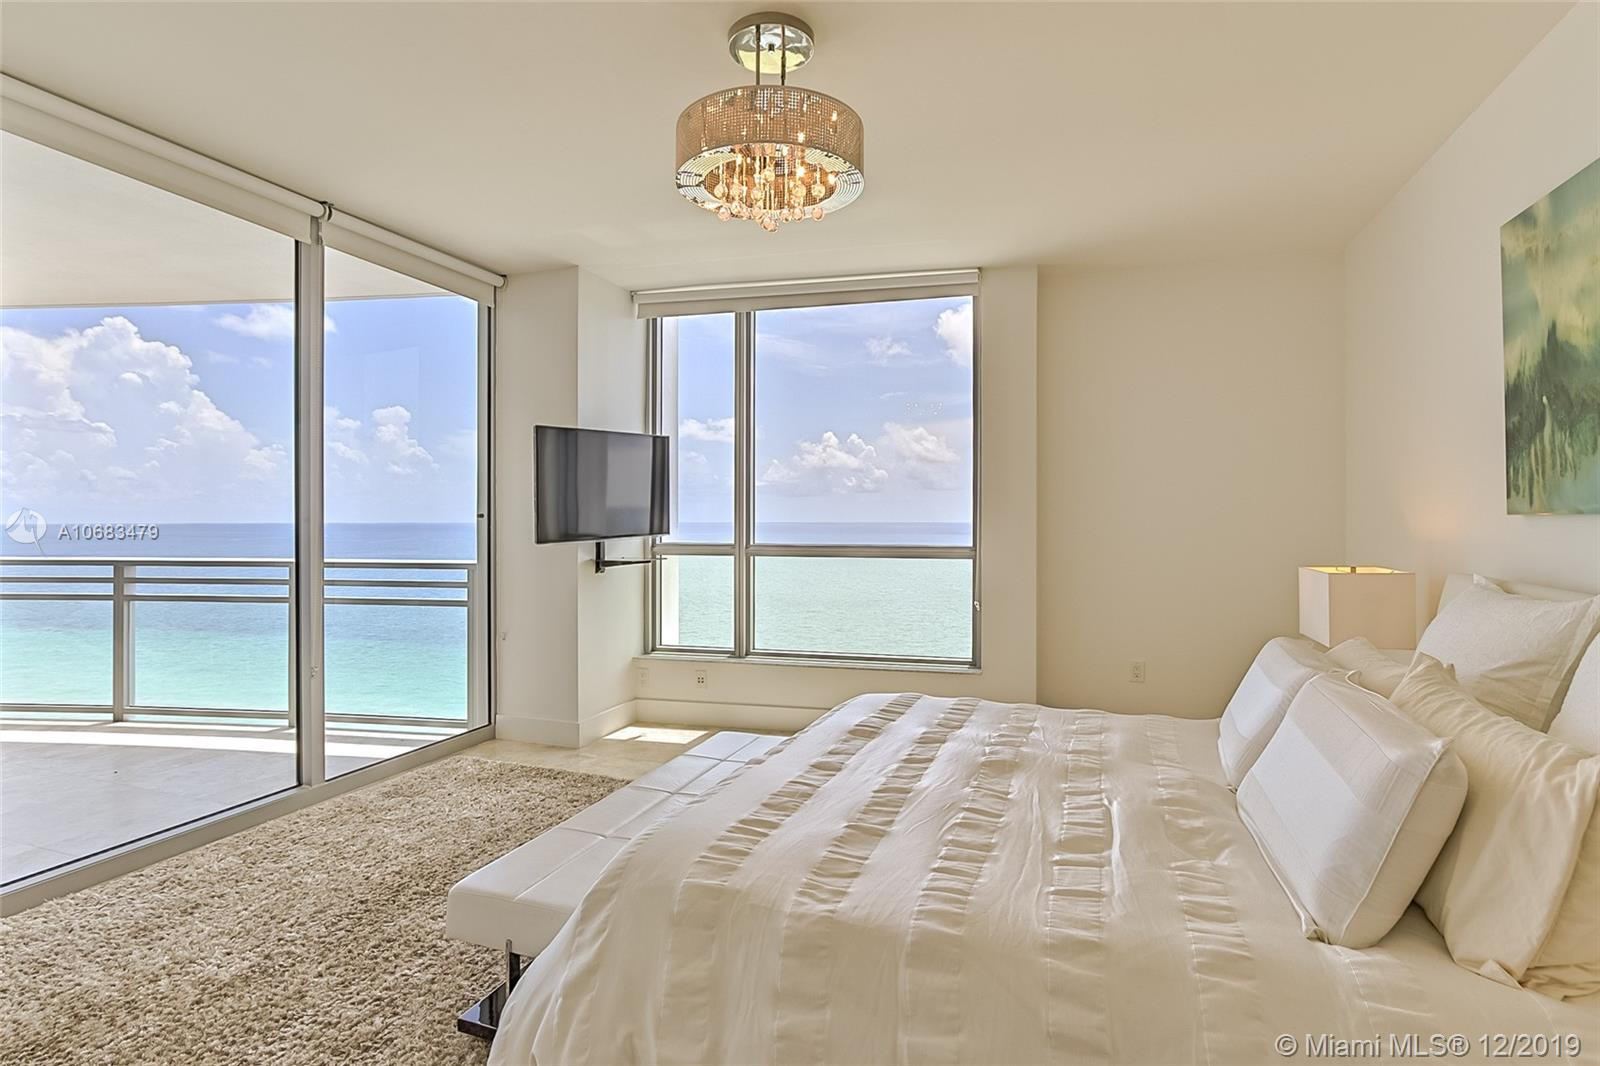 SPECTACULAR 3 BED ,3 1/2 BATH WITH DIRECT BEACH AND OCEANFRONT VIEWS! SPACIOUS, 3050 SQ.FT, LIGHT AND BRIGHT, SPLIT FLOOR PLAN W/PRIVATE ELEVATOR AND PRIVATE LOBBY. IMPECCABLE AND DESIGNER FINISHED WITH MARBLE FLOORS, RECESSED LIGHTS, OPEN KITCHEN, CUSTOM WALK-IN CLOSETS, 2 LARGE BALCONIES, PRIVATE SURROUND-SOUND THEATER ,FITNESS CENTER, ENTERTAINMENT AREA, HEATED SALINE POOL & SPA. DELIGHT YOURSELF WITH THE WORLD CLASS SERVICES INCL.ROOM SERVICE AND MORE OF THE HILTON BEACH RESORT & SPA NEXT DOOR AND 8 RESTAURANTS.PURE LUXURY! EASY TO SHOW.